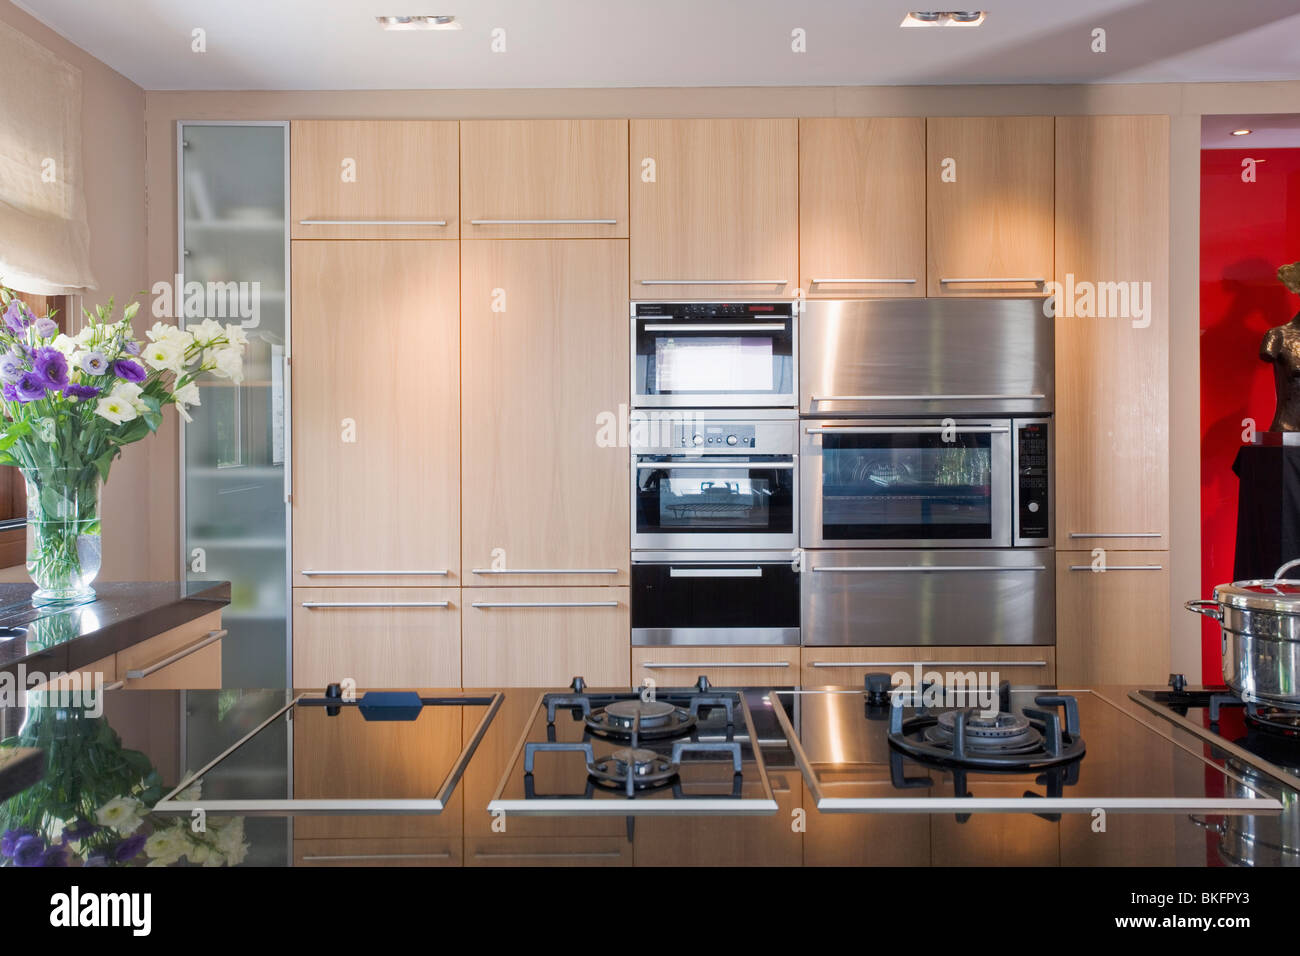 Gas hobs in fitted unit in modern kitchen with double ovens in